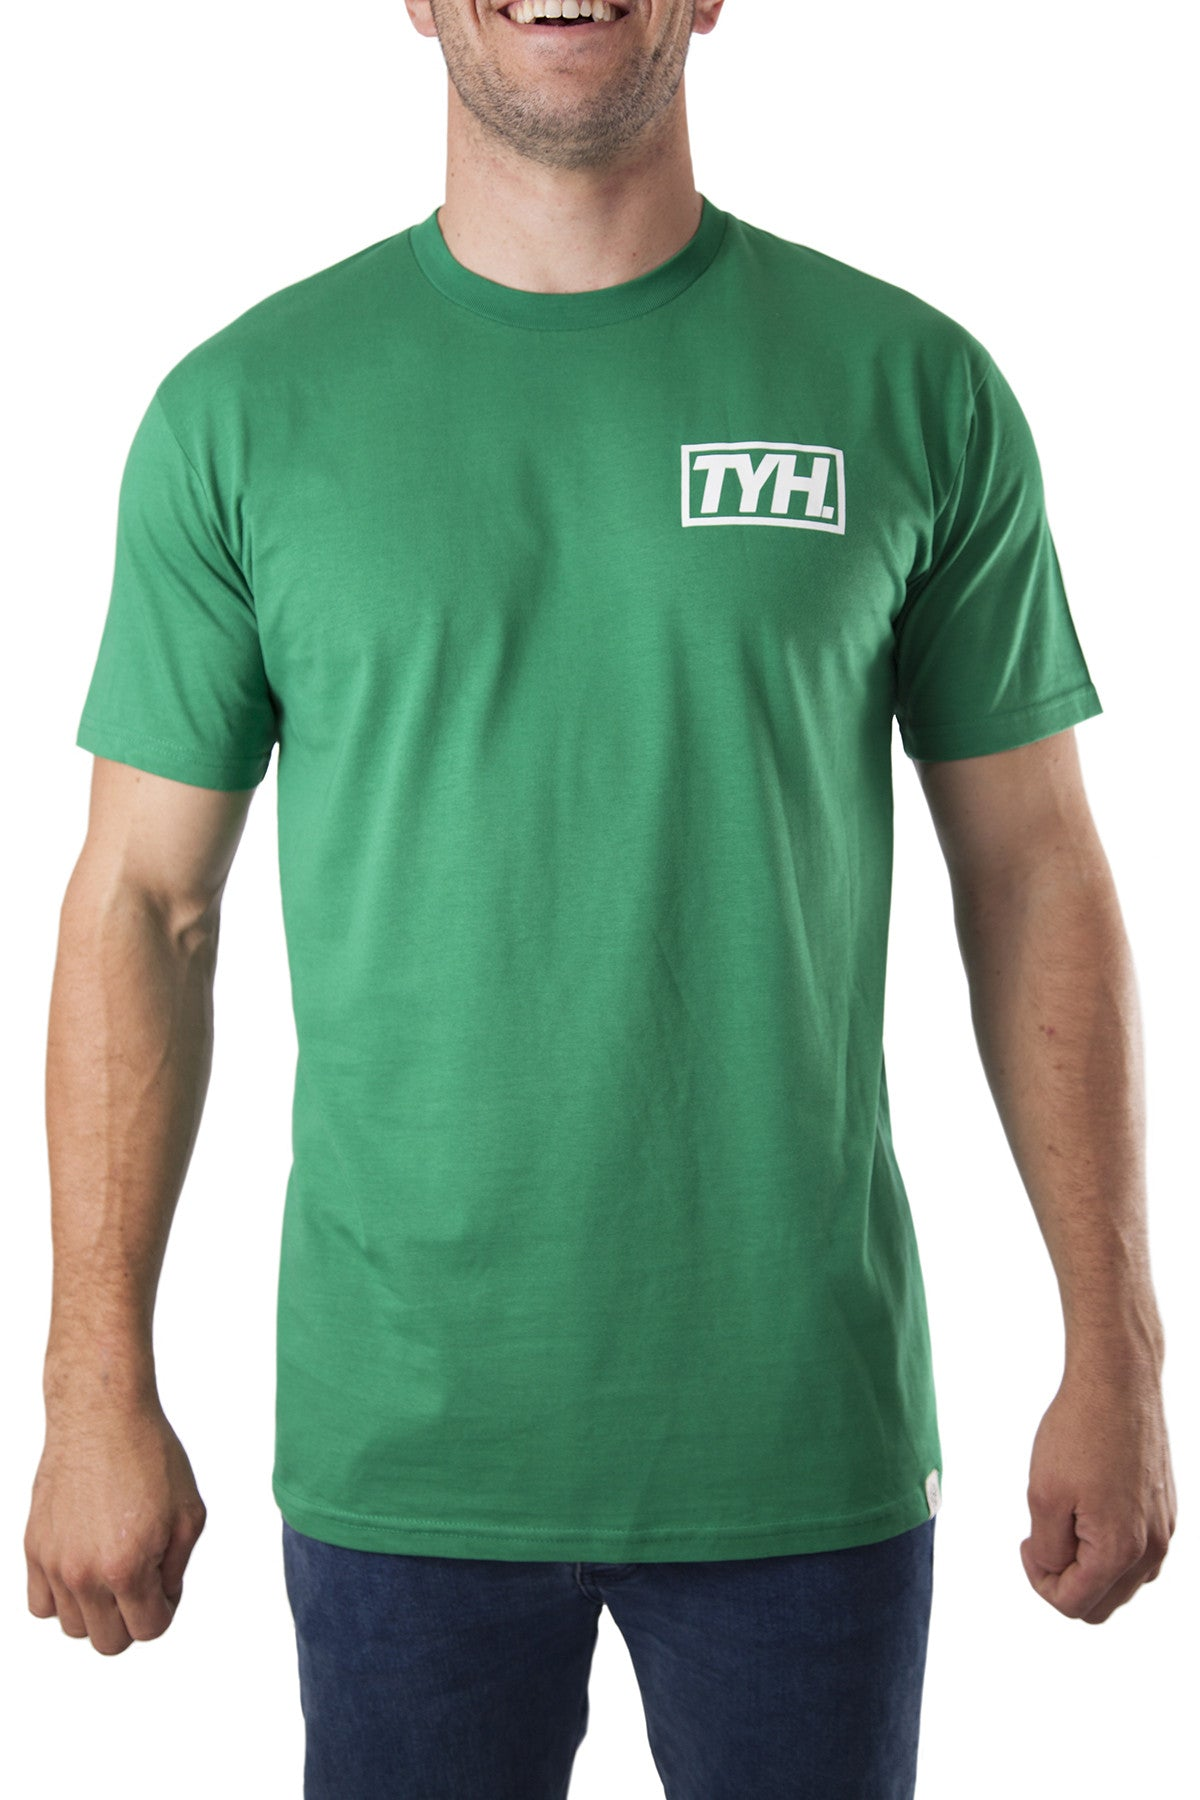 TYH. POCKET LOGO TEE TSHIRT GREEN